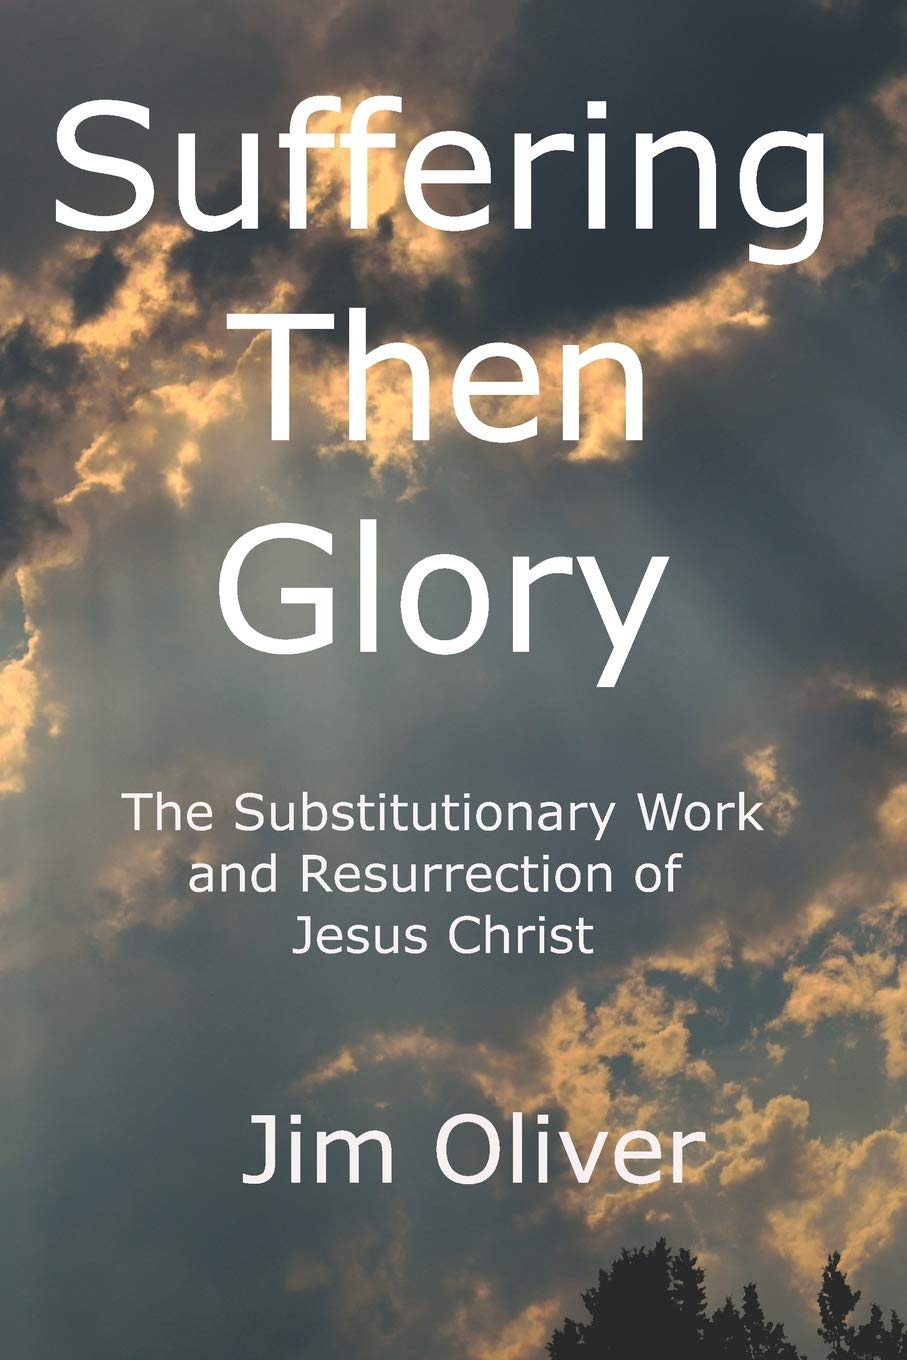 Suffering Then Glory: The Substutionary Work and Resurrection of Jesus Christ